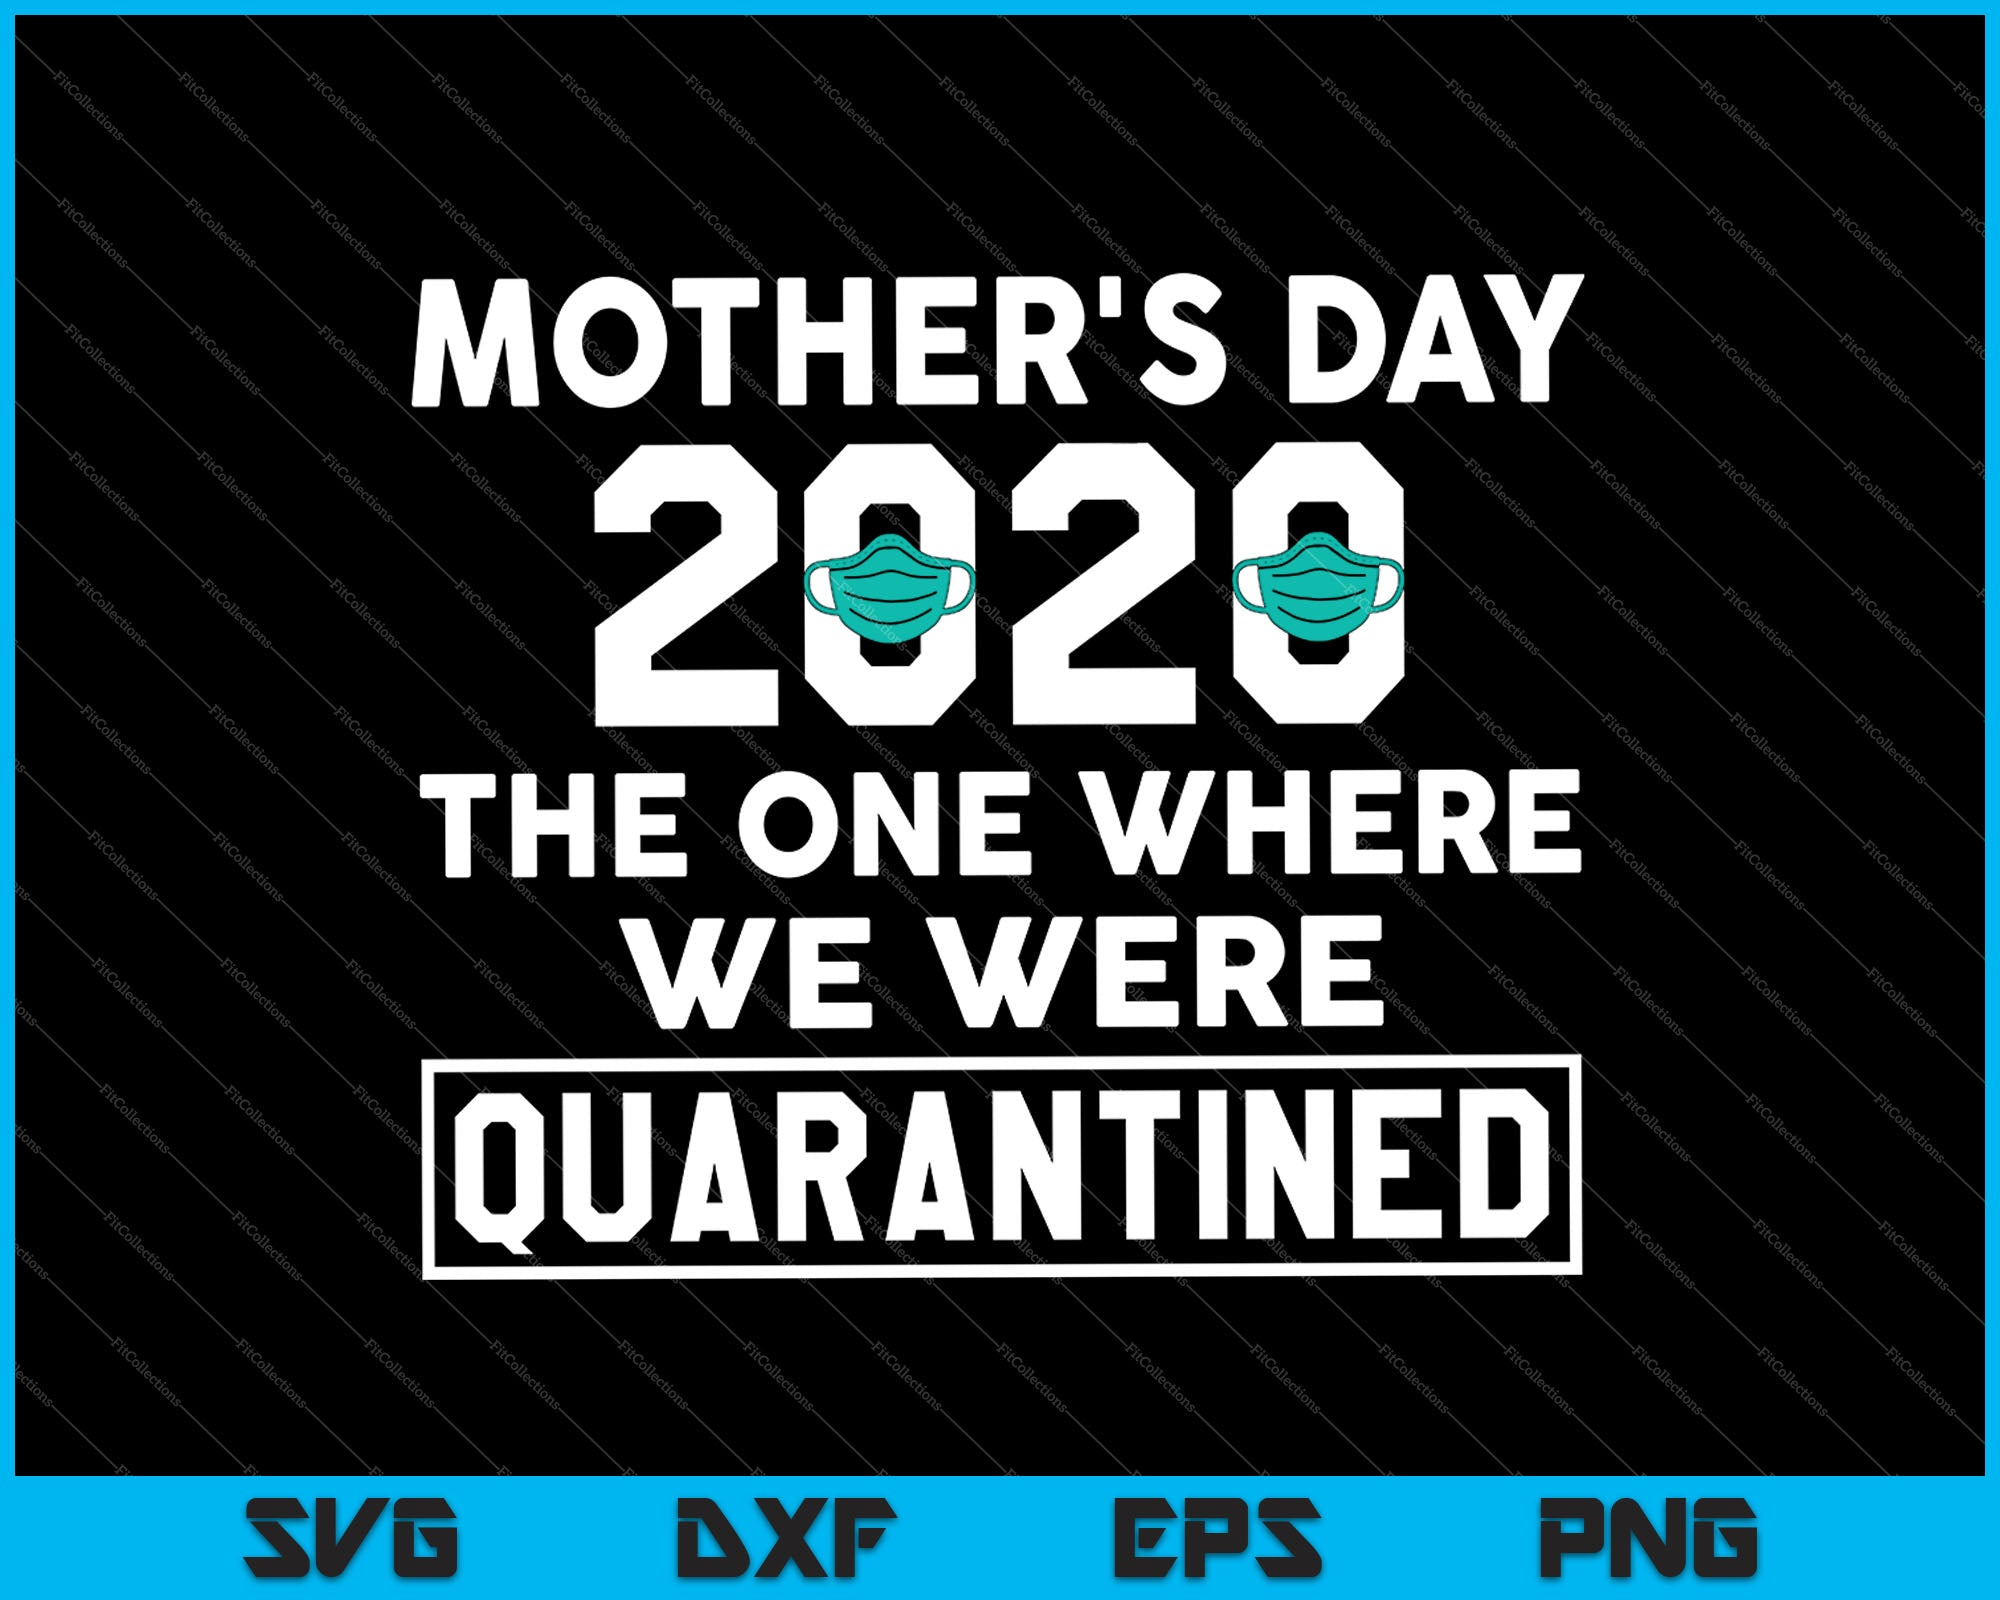 Free Download for free in png, svg, pdf formats 👆. Mother S Day 2020 The One Where We Were Quarantined Svg Png Files Creativeusart SVG, PNG, EPS, DXF File